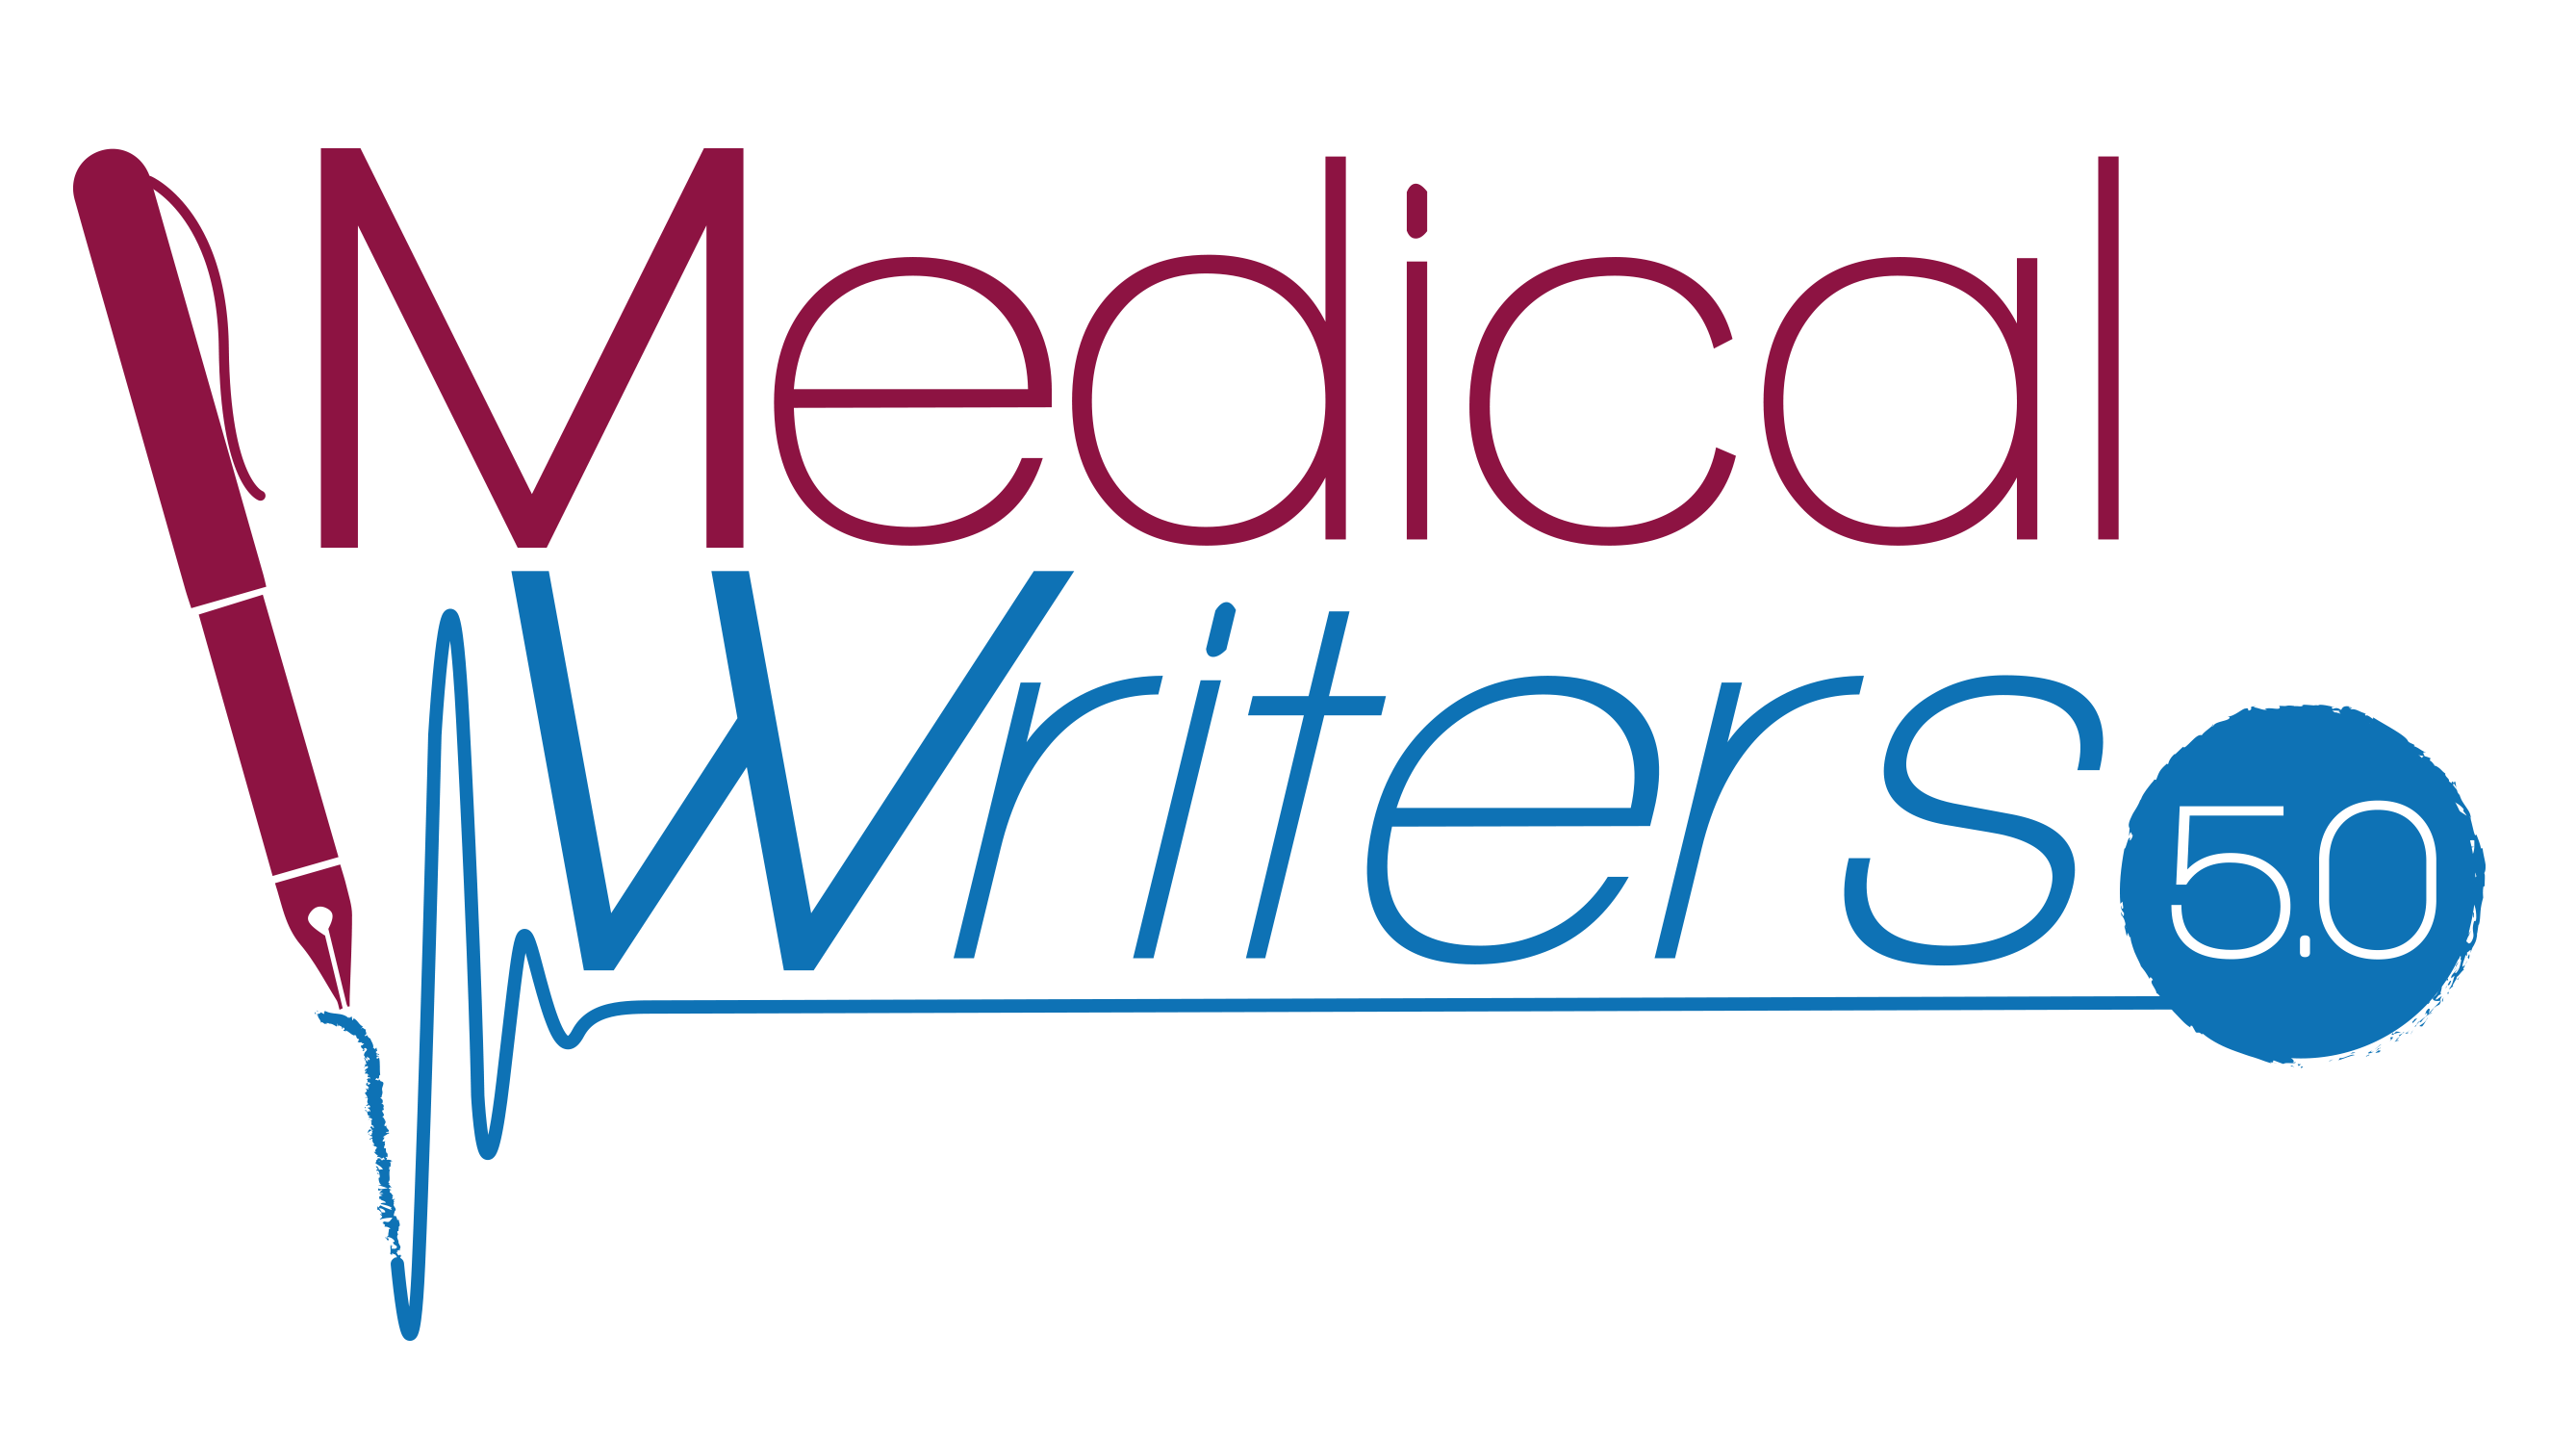 Medical Writers 5.0